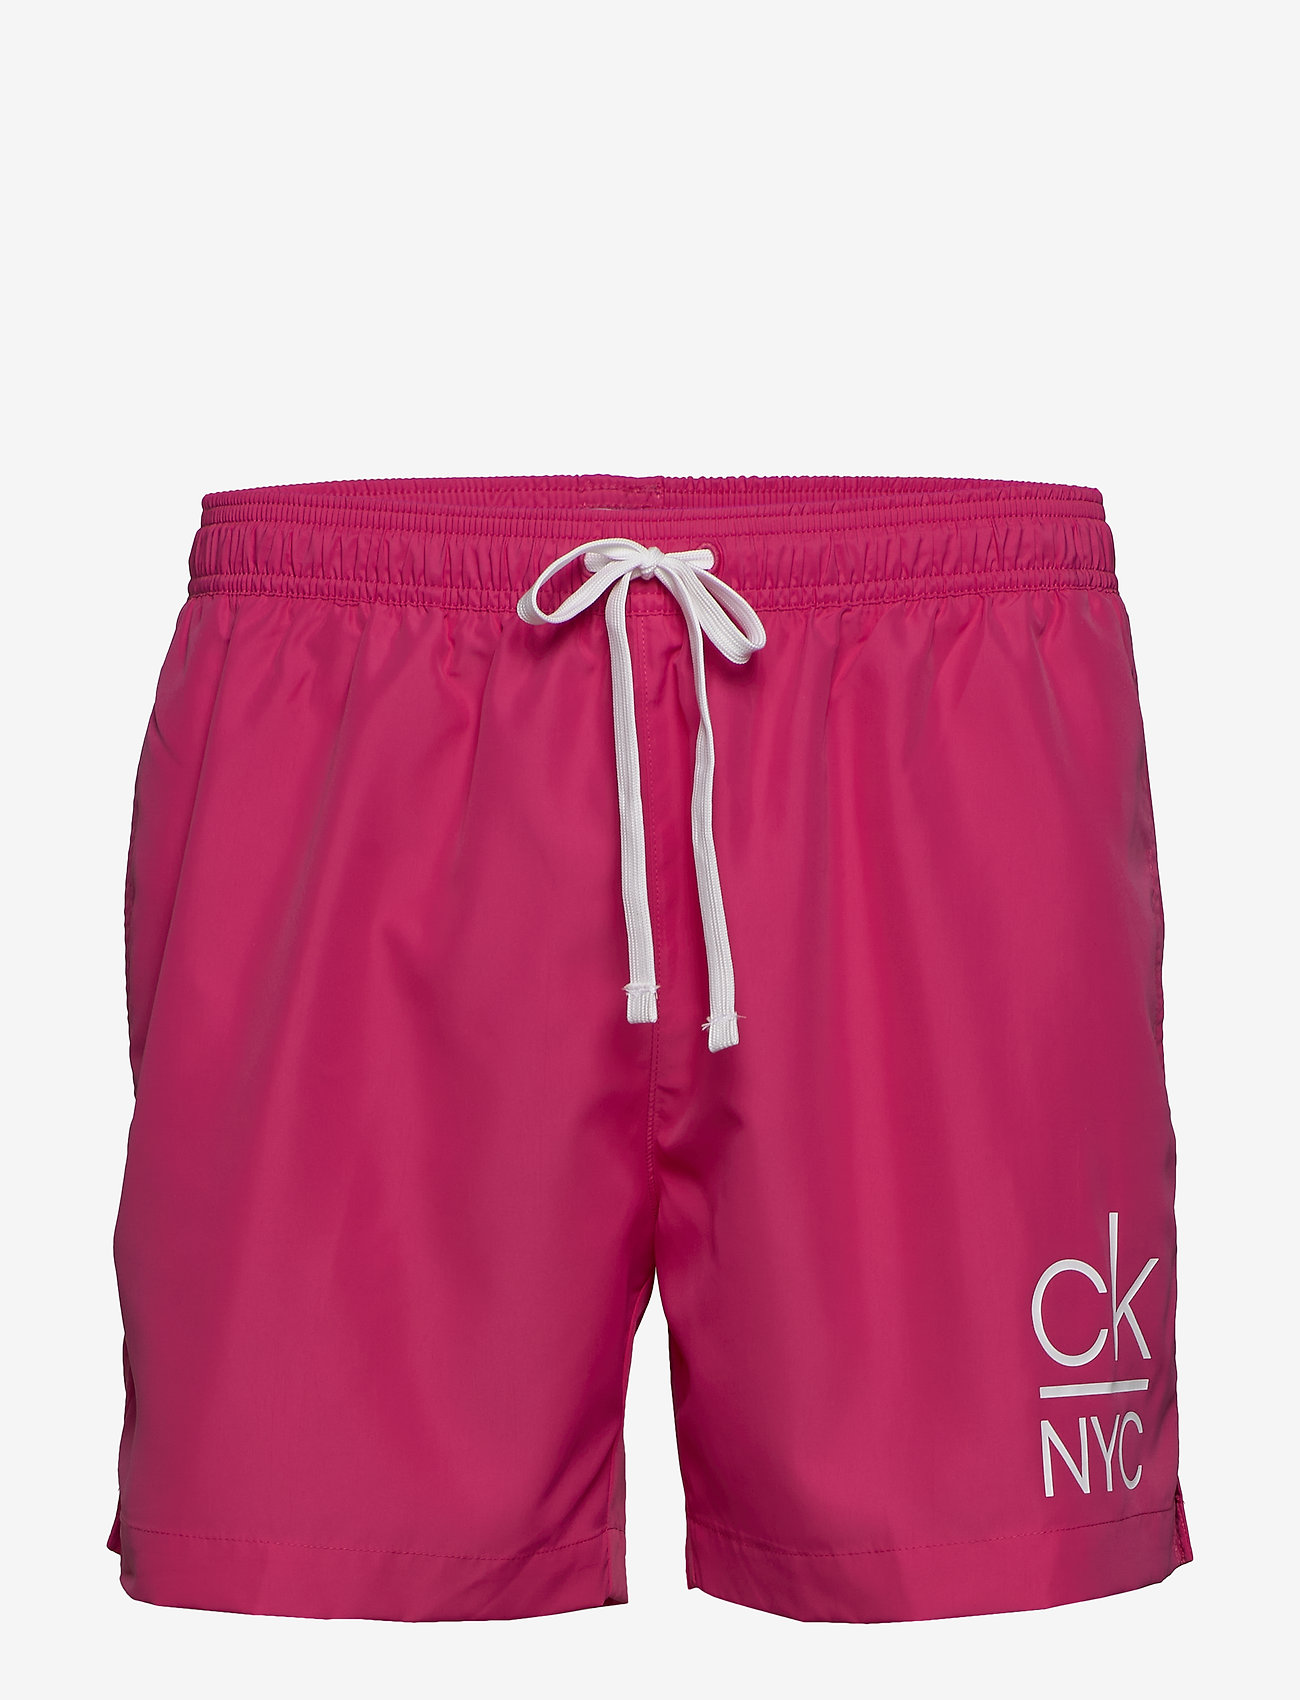 Calvin Klein - MEDIUM DRAWSTRING - badehosen - jewel pink - 0